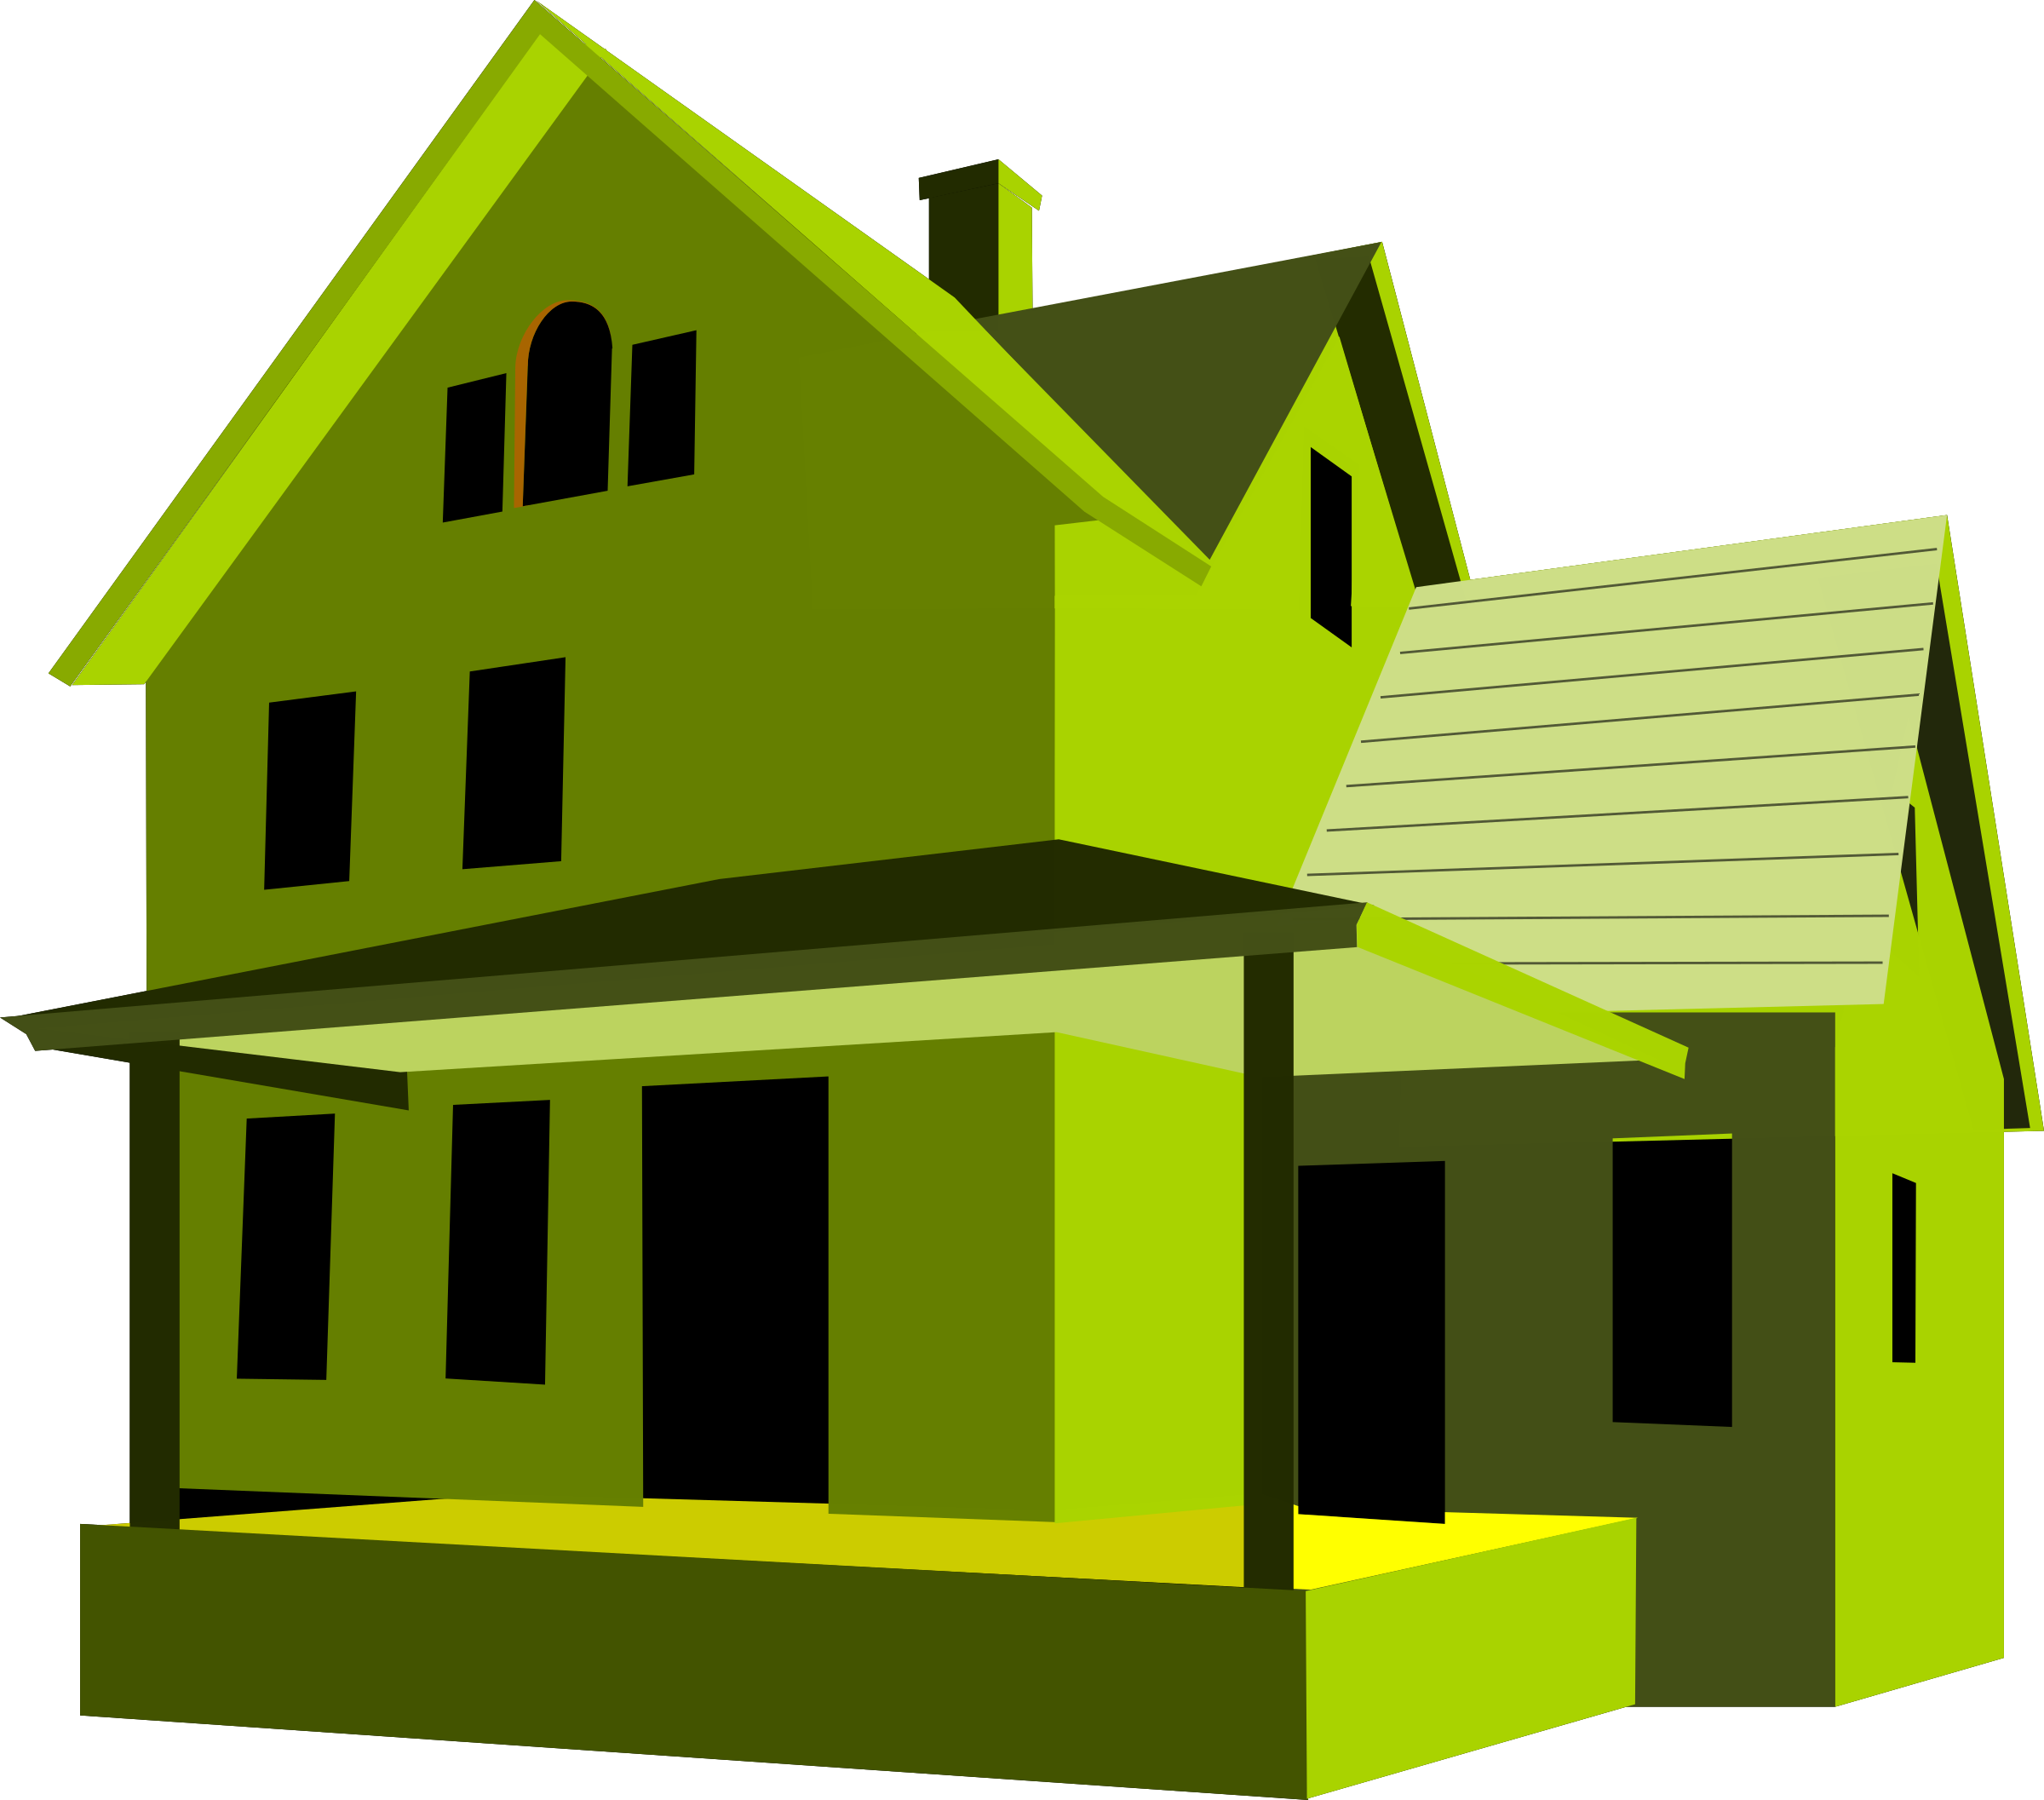 Png Hd Of Homes Transparent Hd Of Homes Png Images: Home Clipart Vector Png